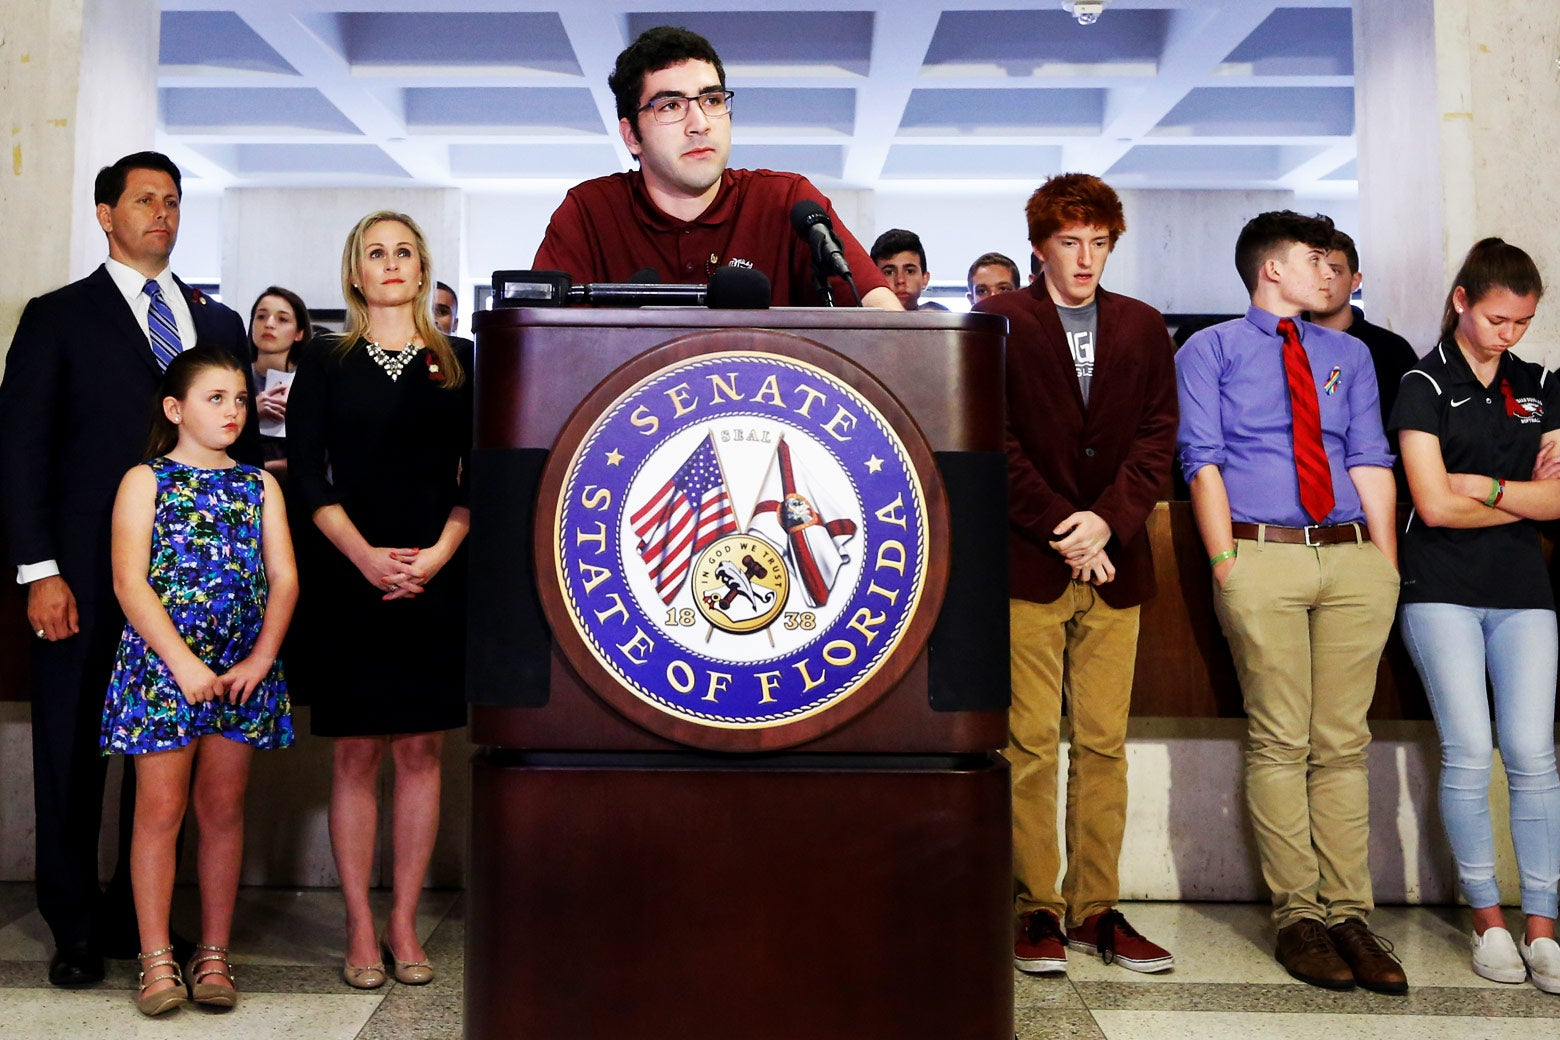 Lorenzo Prado stands at a podium with fellow survivors and family members behind him.